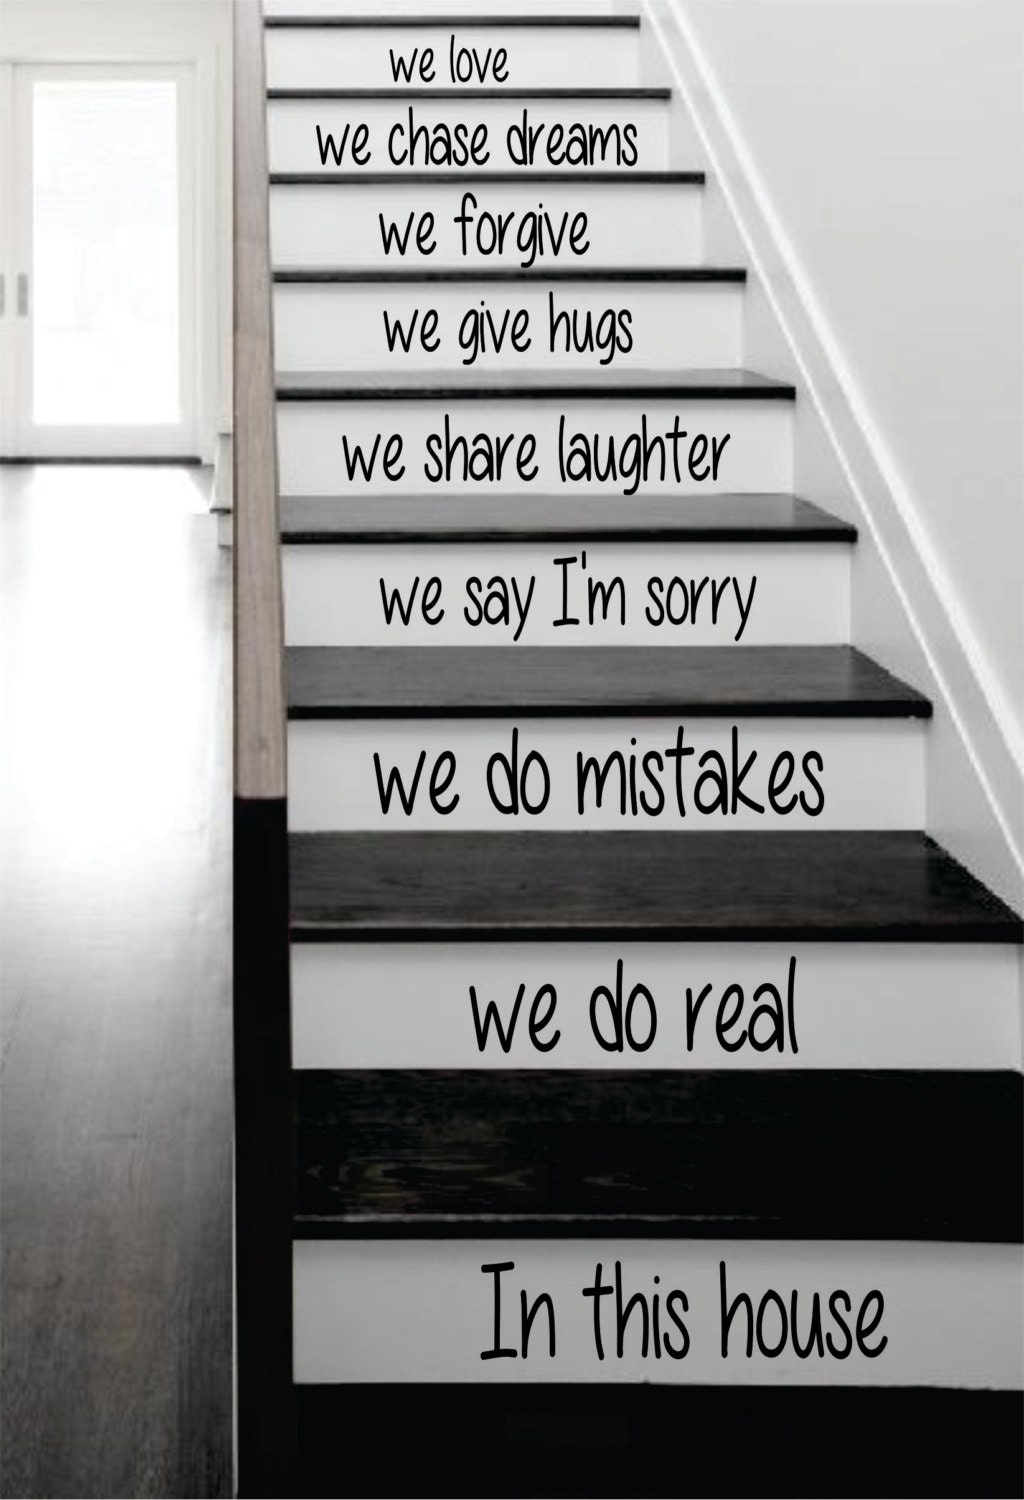 in this house stairs decal sticker wall vinyl art home family. Black Bedroom Furniture Sets. Home Design Ideas